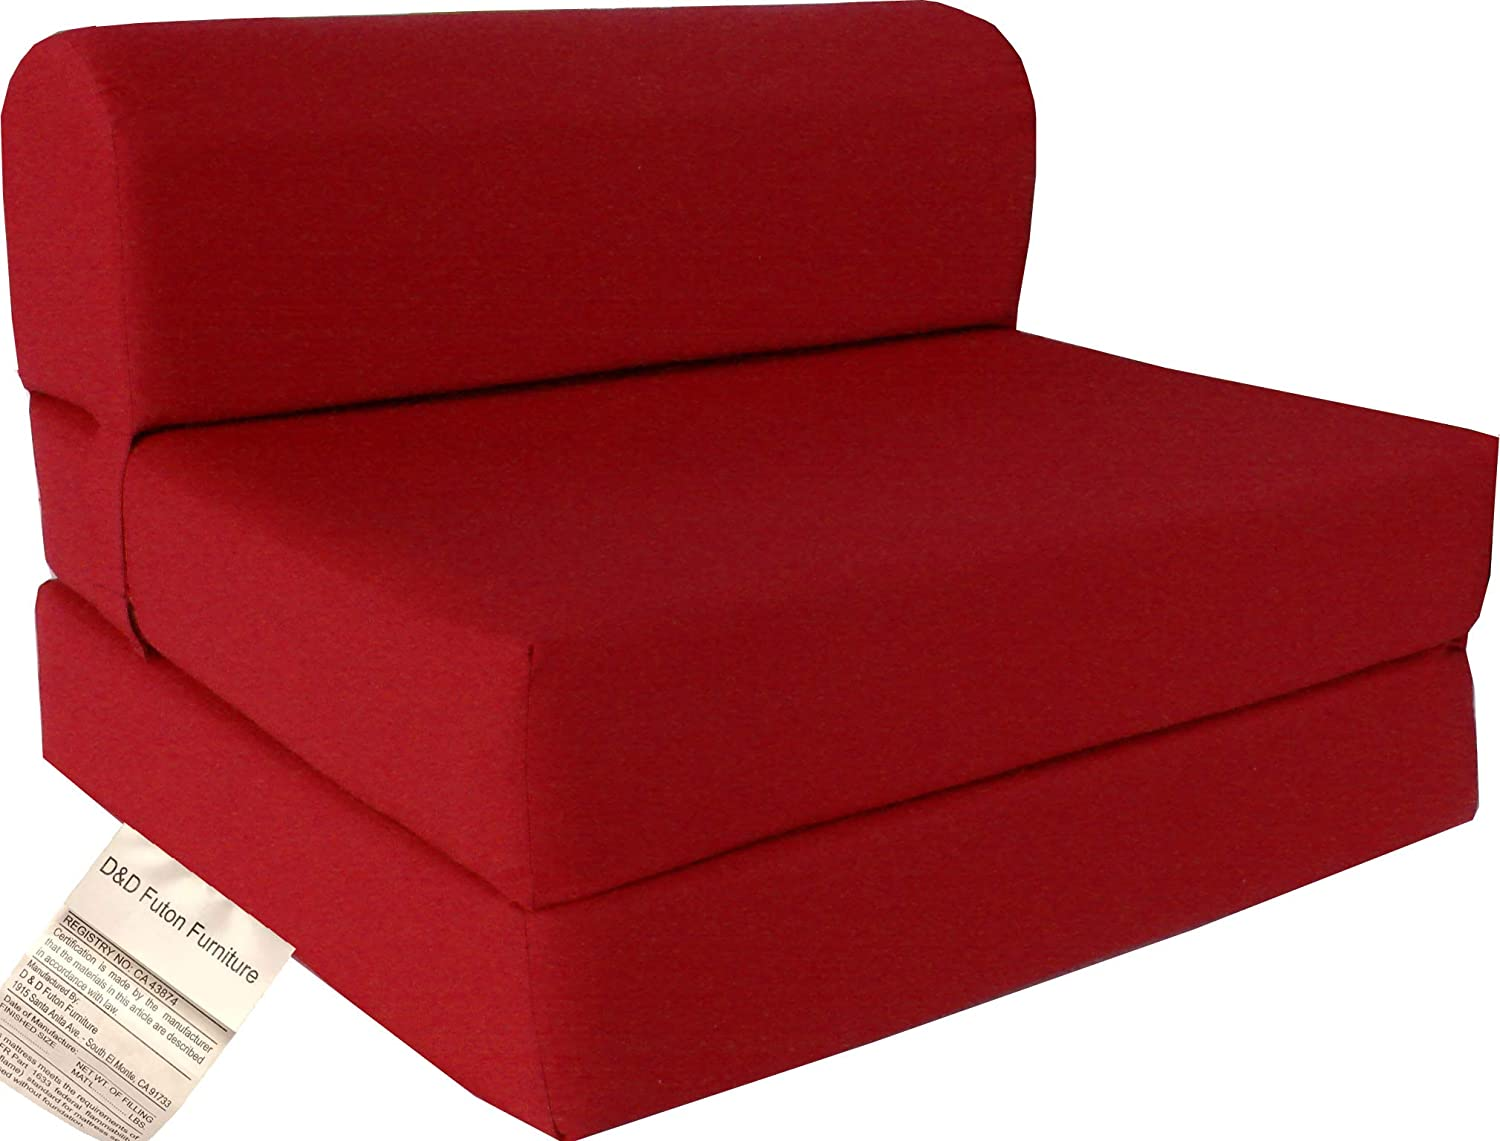 D D Futon Furniture Red Sleeper Chair Folding Foam Bed Sized 6 X 32 X 70, Studio Guest Foldable Chair Beds, Foam Sofa, Couch, High Density Foam 1.8 Pounds.